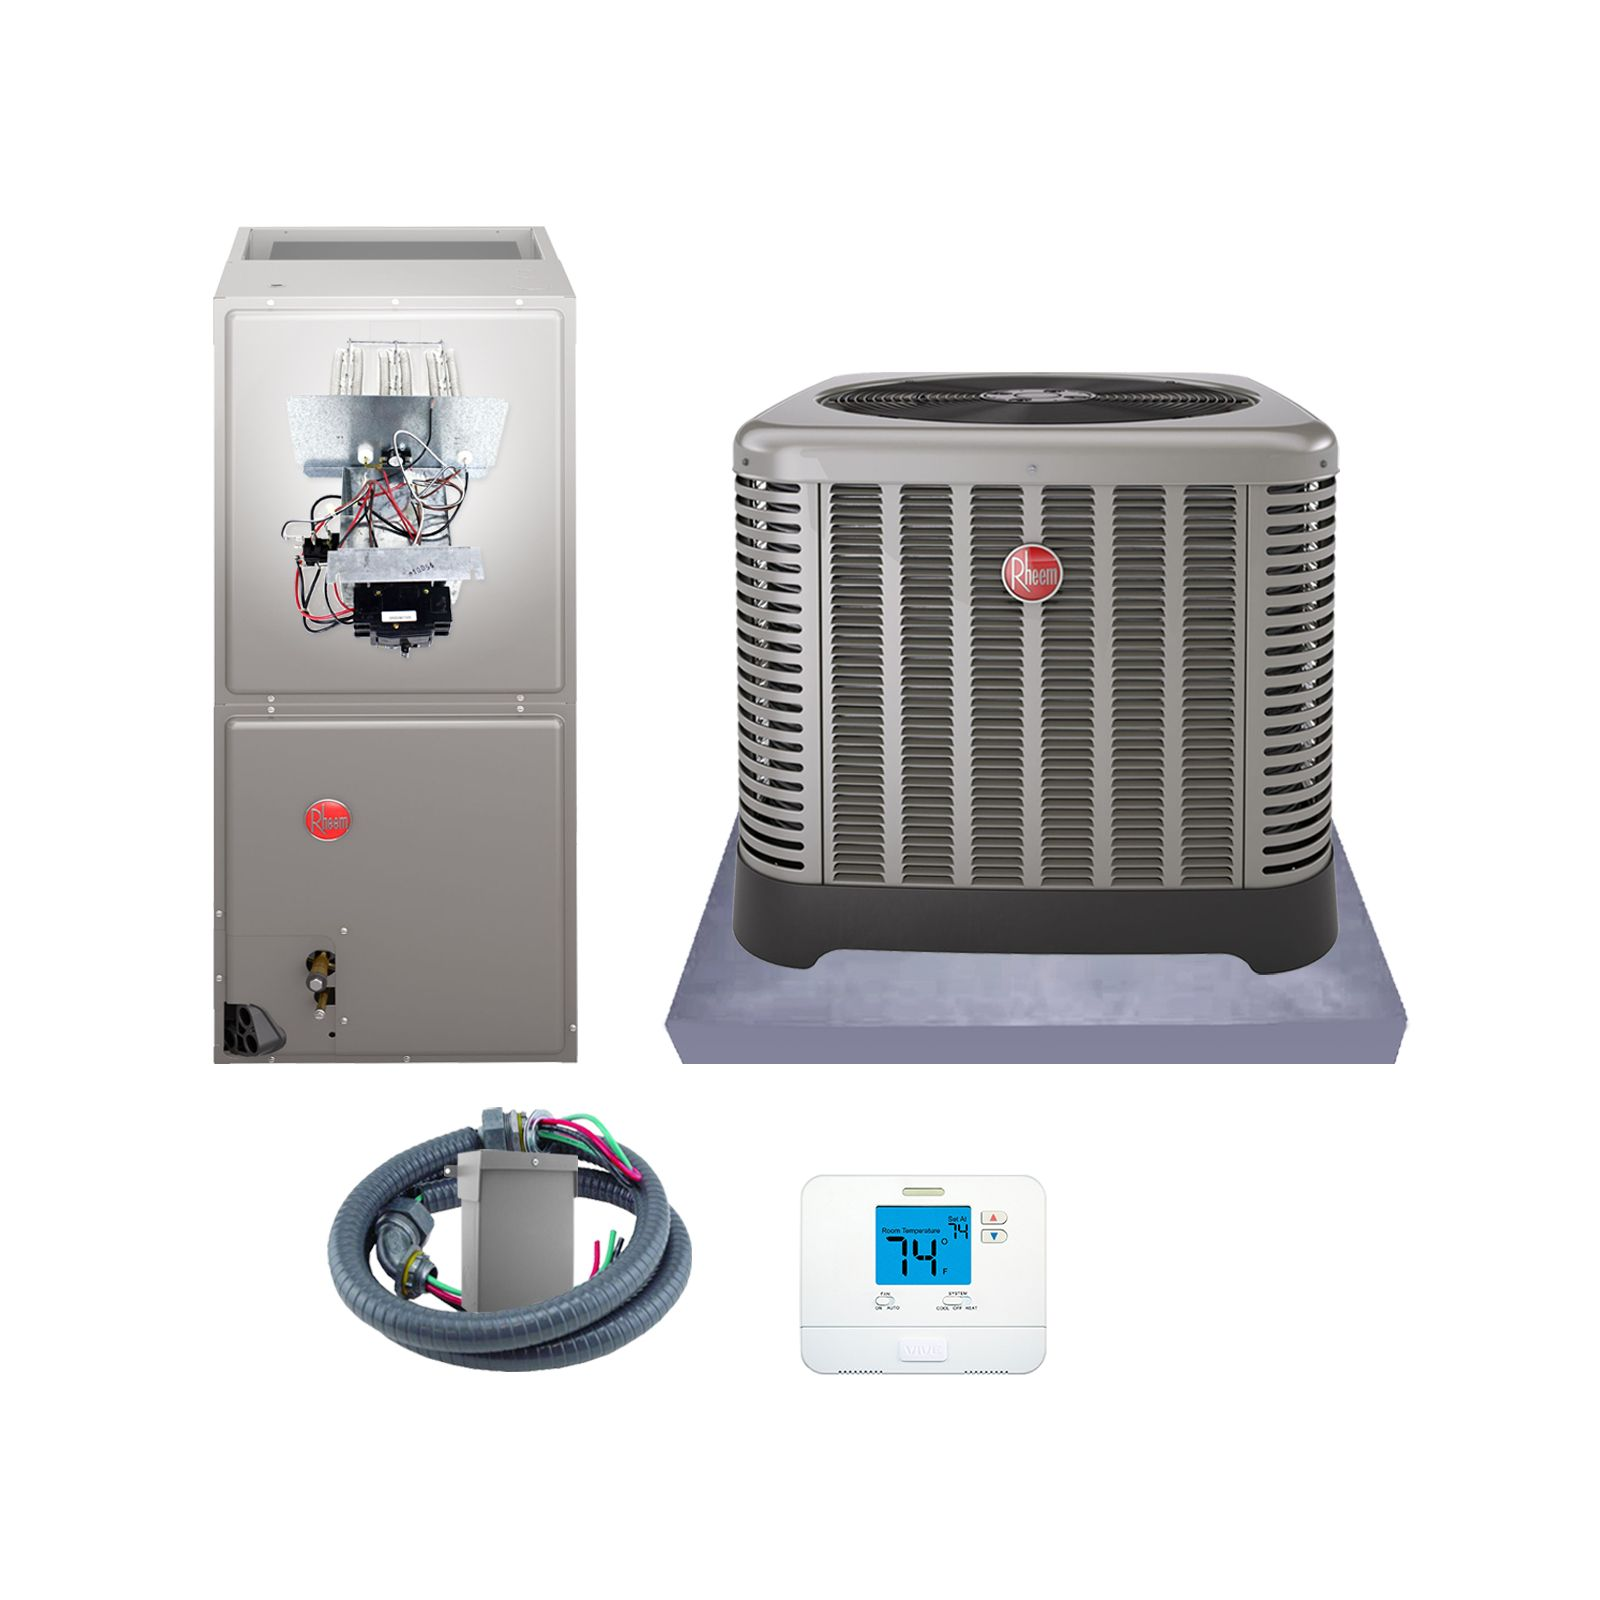 Rheem (AHRI 7942888) 3 1/2 Ton, 16 SEER/13 EER Classic Series, Air Conditioner Split System and Install Kit